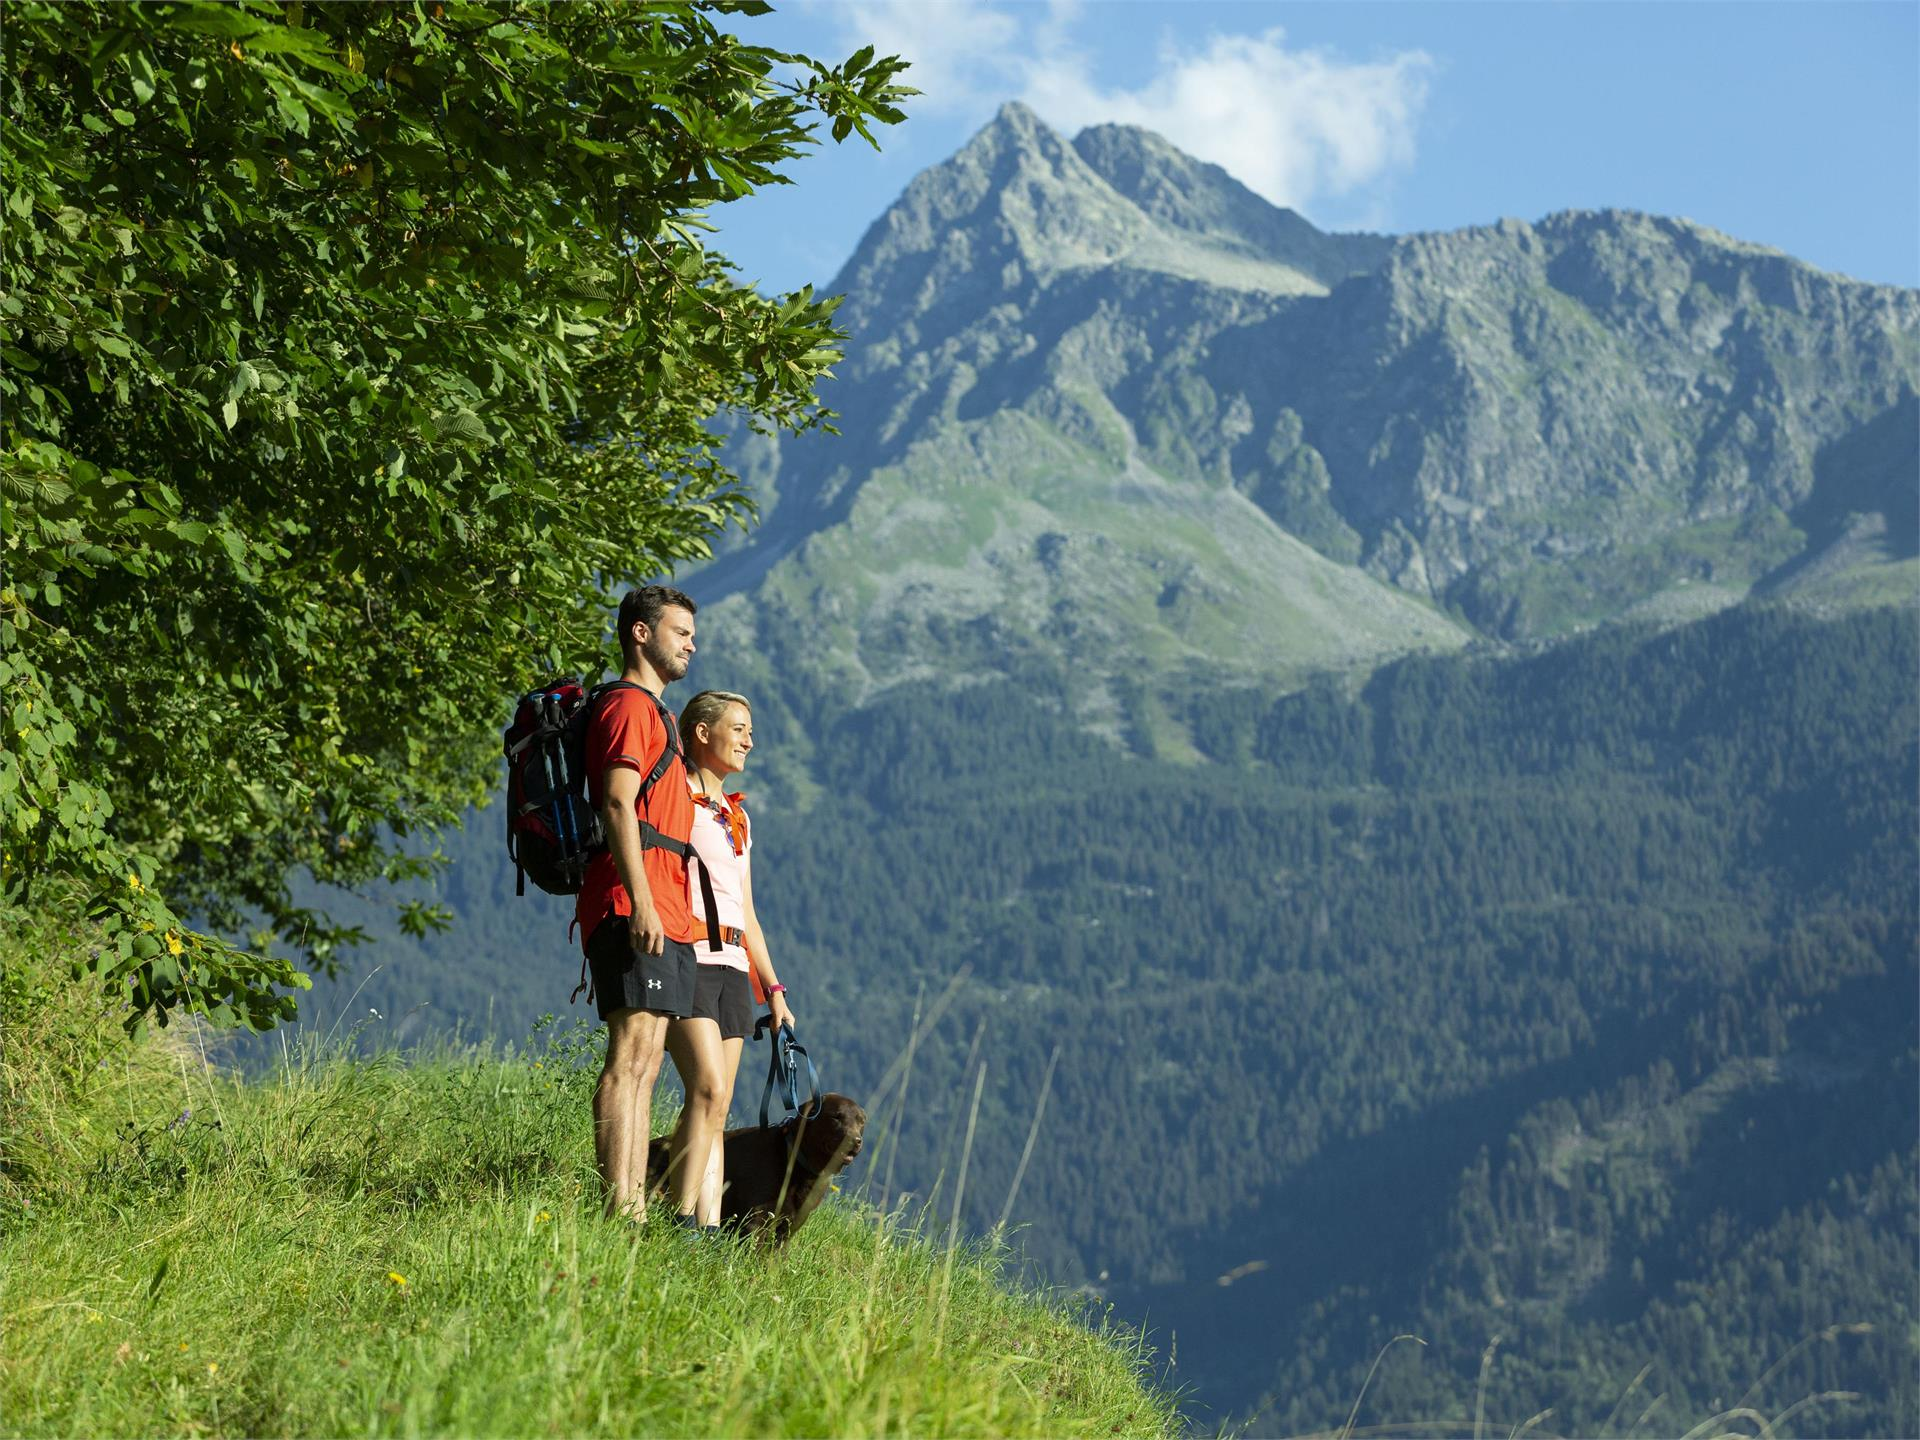 Hiking on the Marling Höhenweg Trail